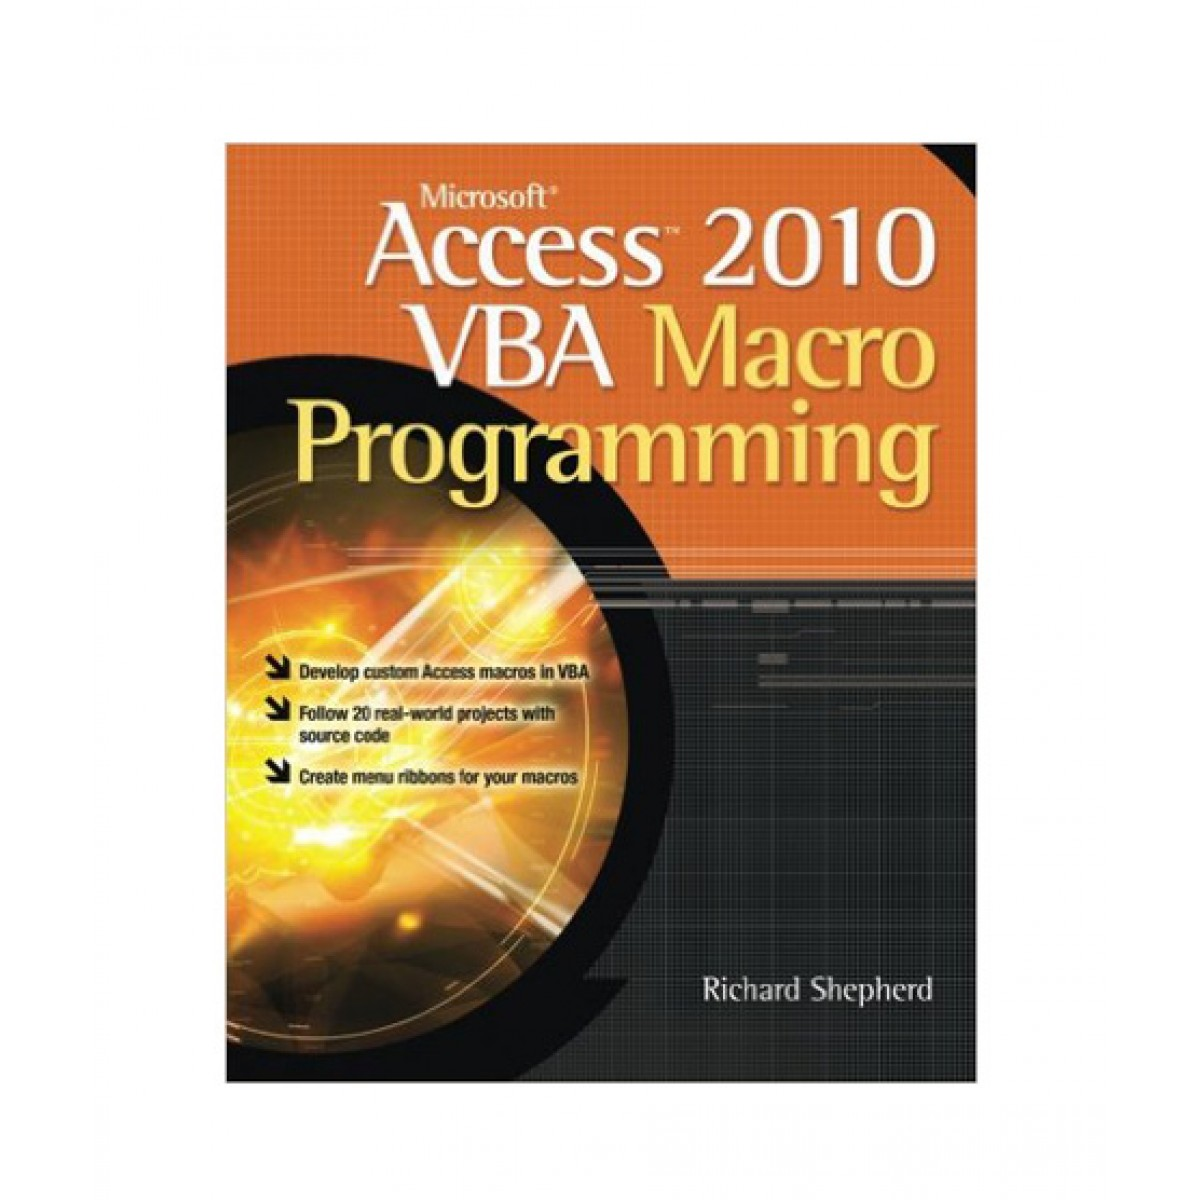 Microsoft Access 2010 VBA Macro Programming Book 1st Edition